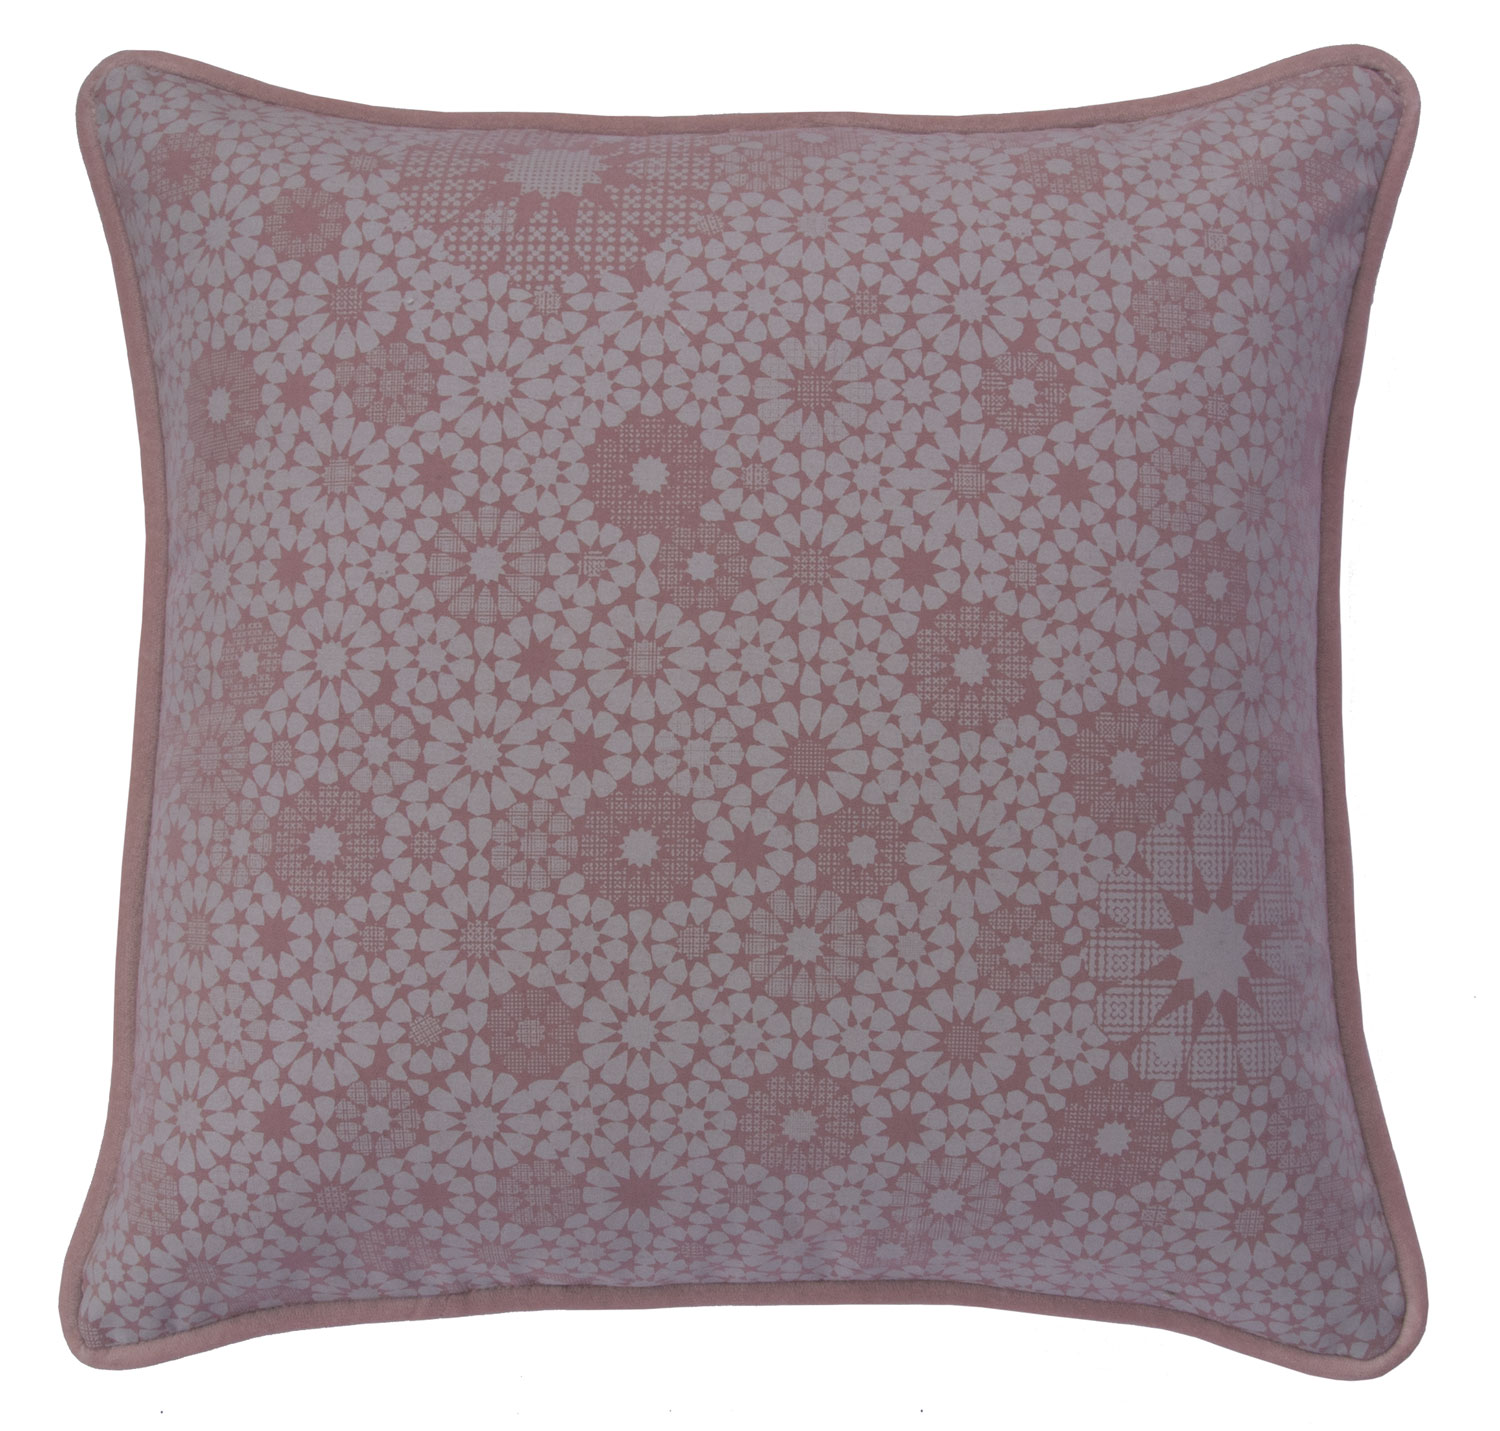 "Maroc, 19"" pillow in Baby PInk"